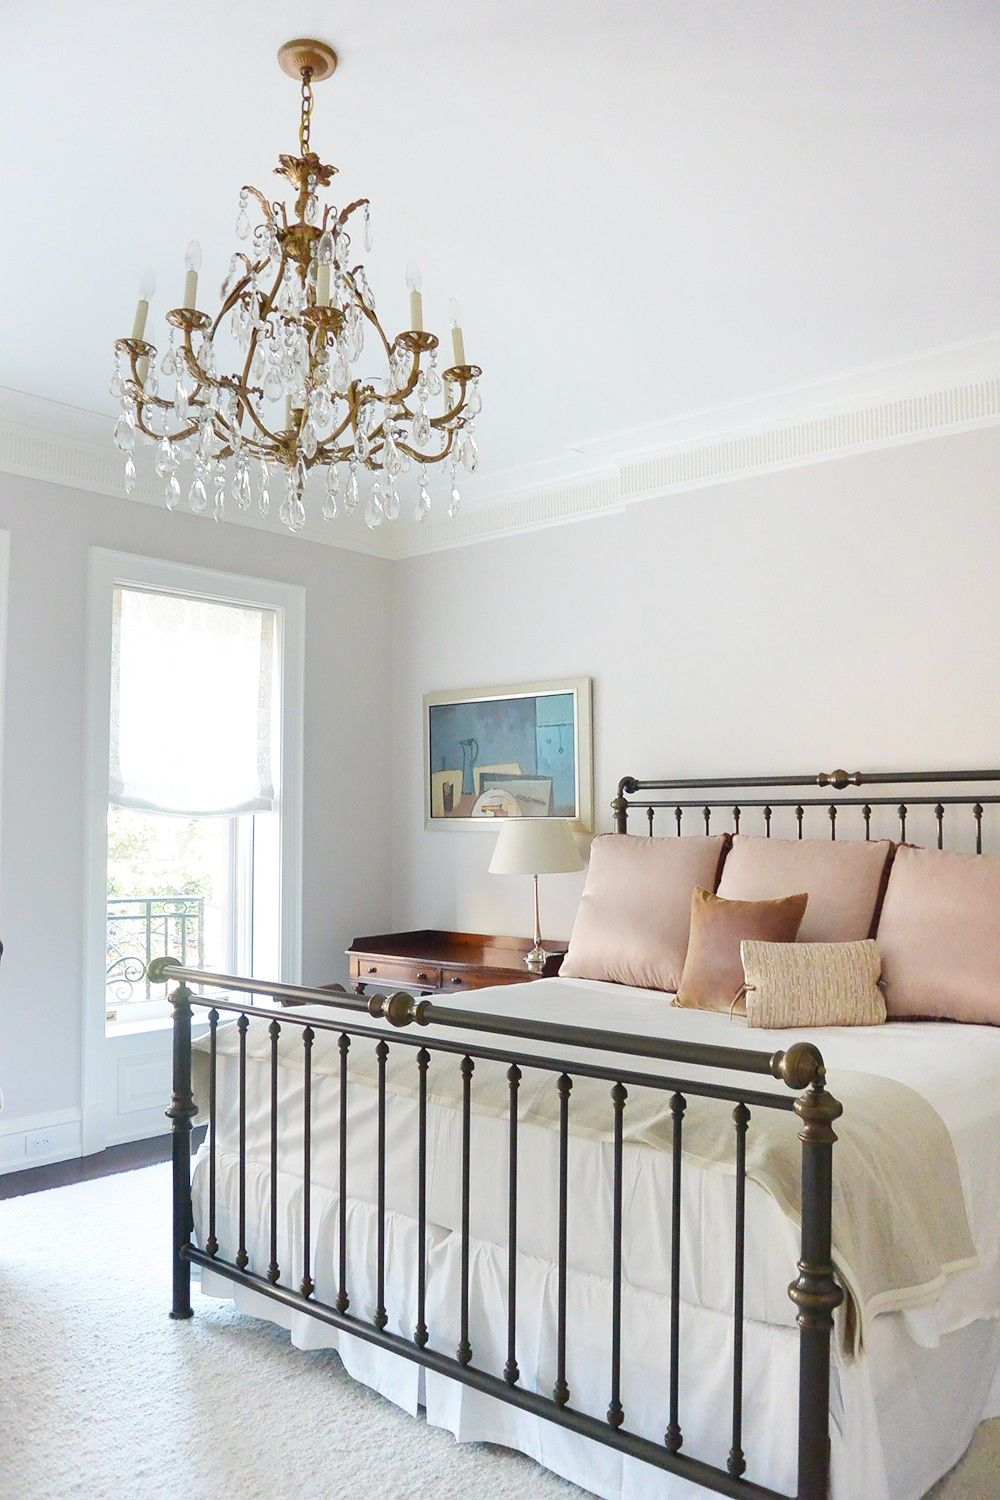 Benjamin Moore Kitten Whiskers This Color Has The Perfect Balance Of Warm Tones To Create A Soothing And Resting E